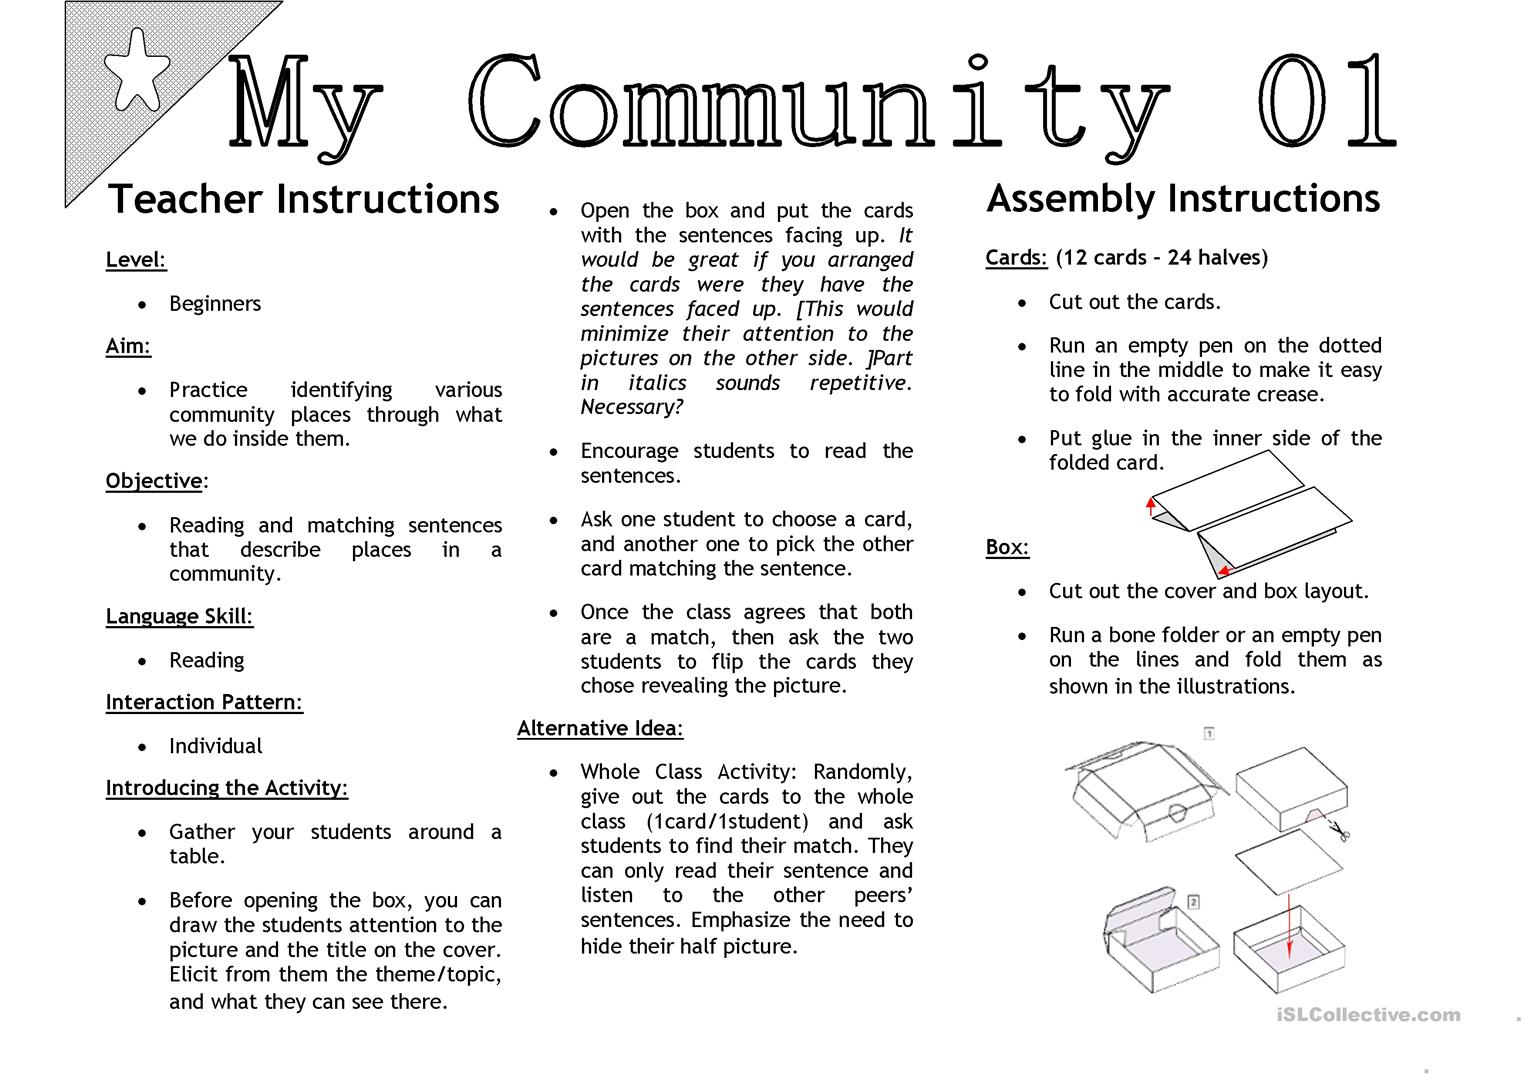 My Community 01 Sentenc Matching Activity Cards Worksheet